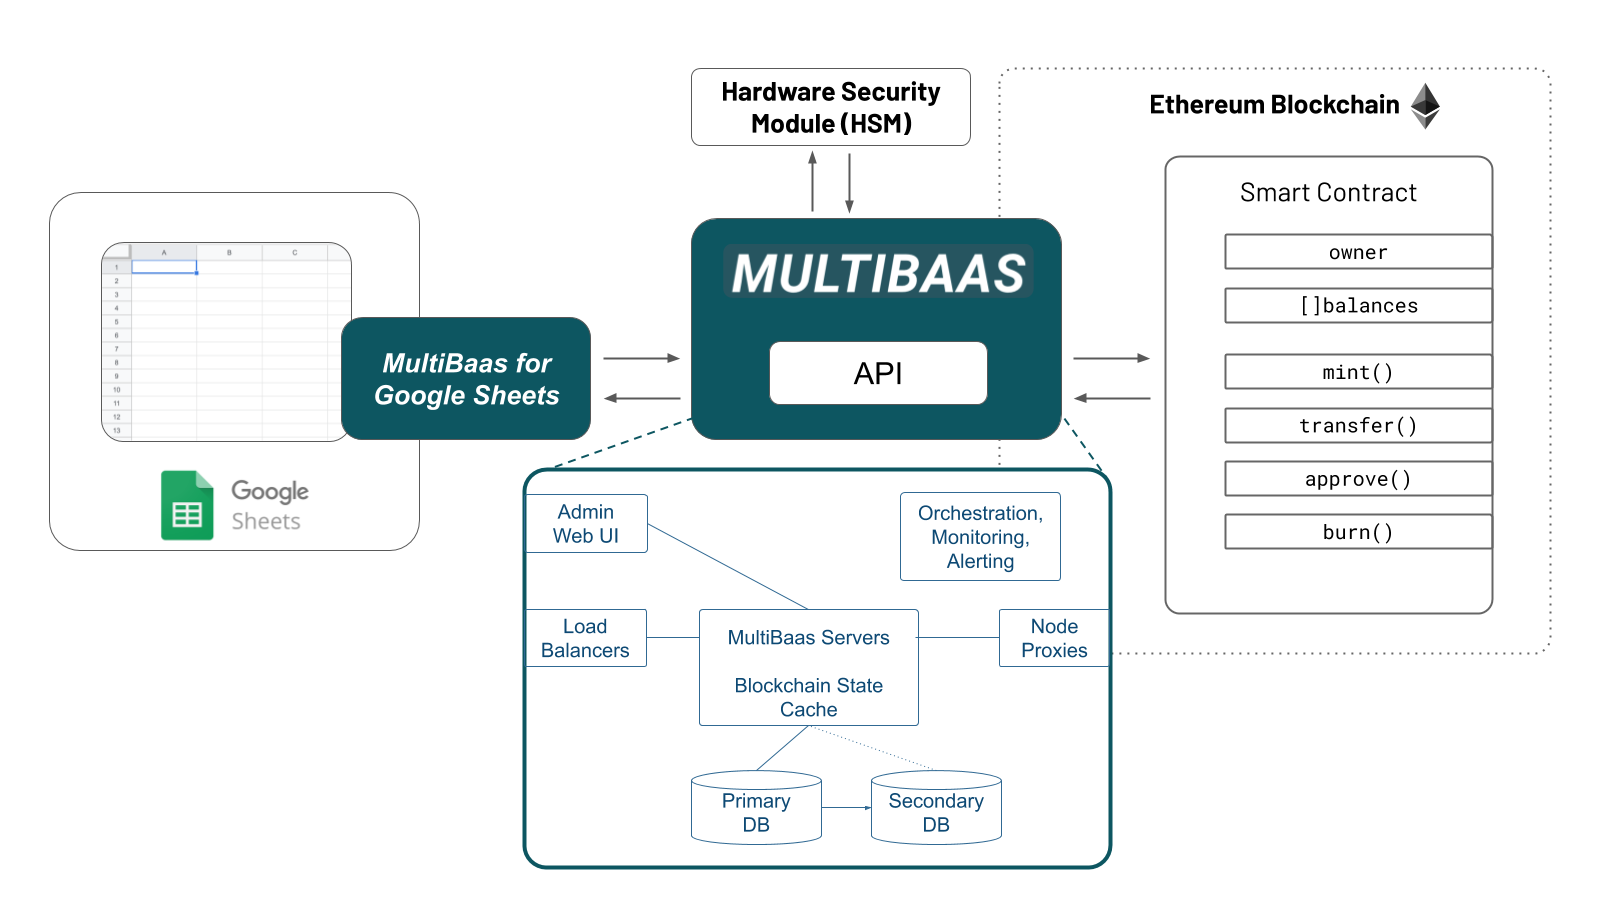 MultiBaas for Google Sheets